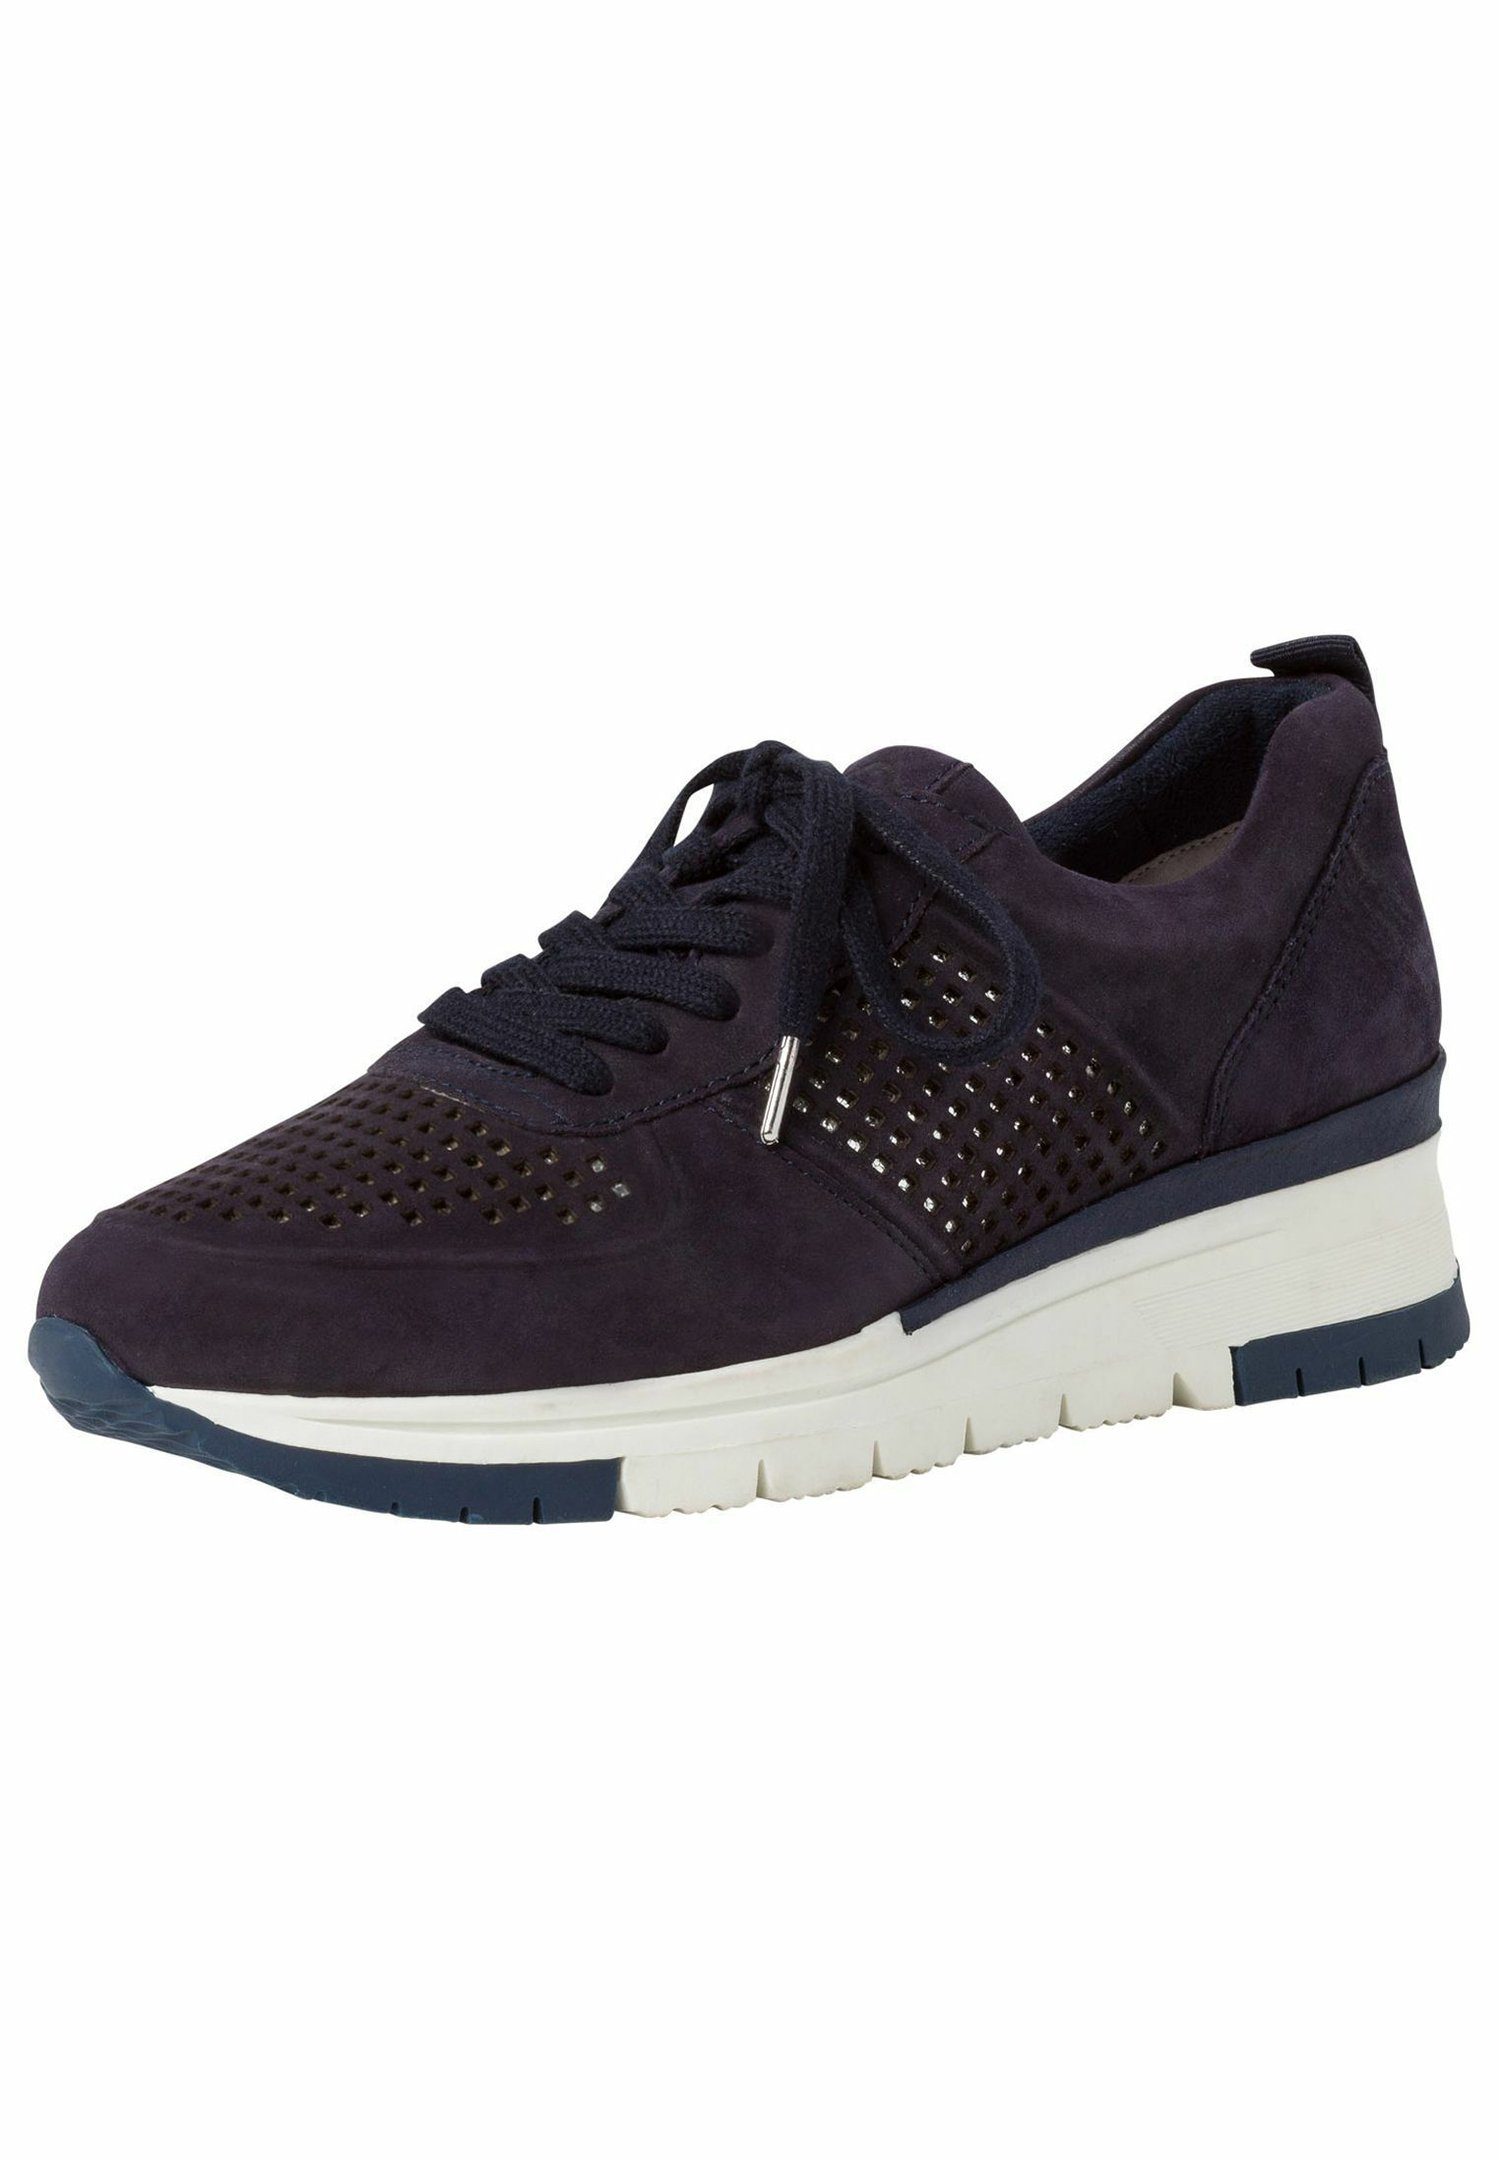 Tamaris Sneaker low navy pea/punch/blau